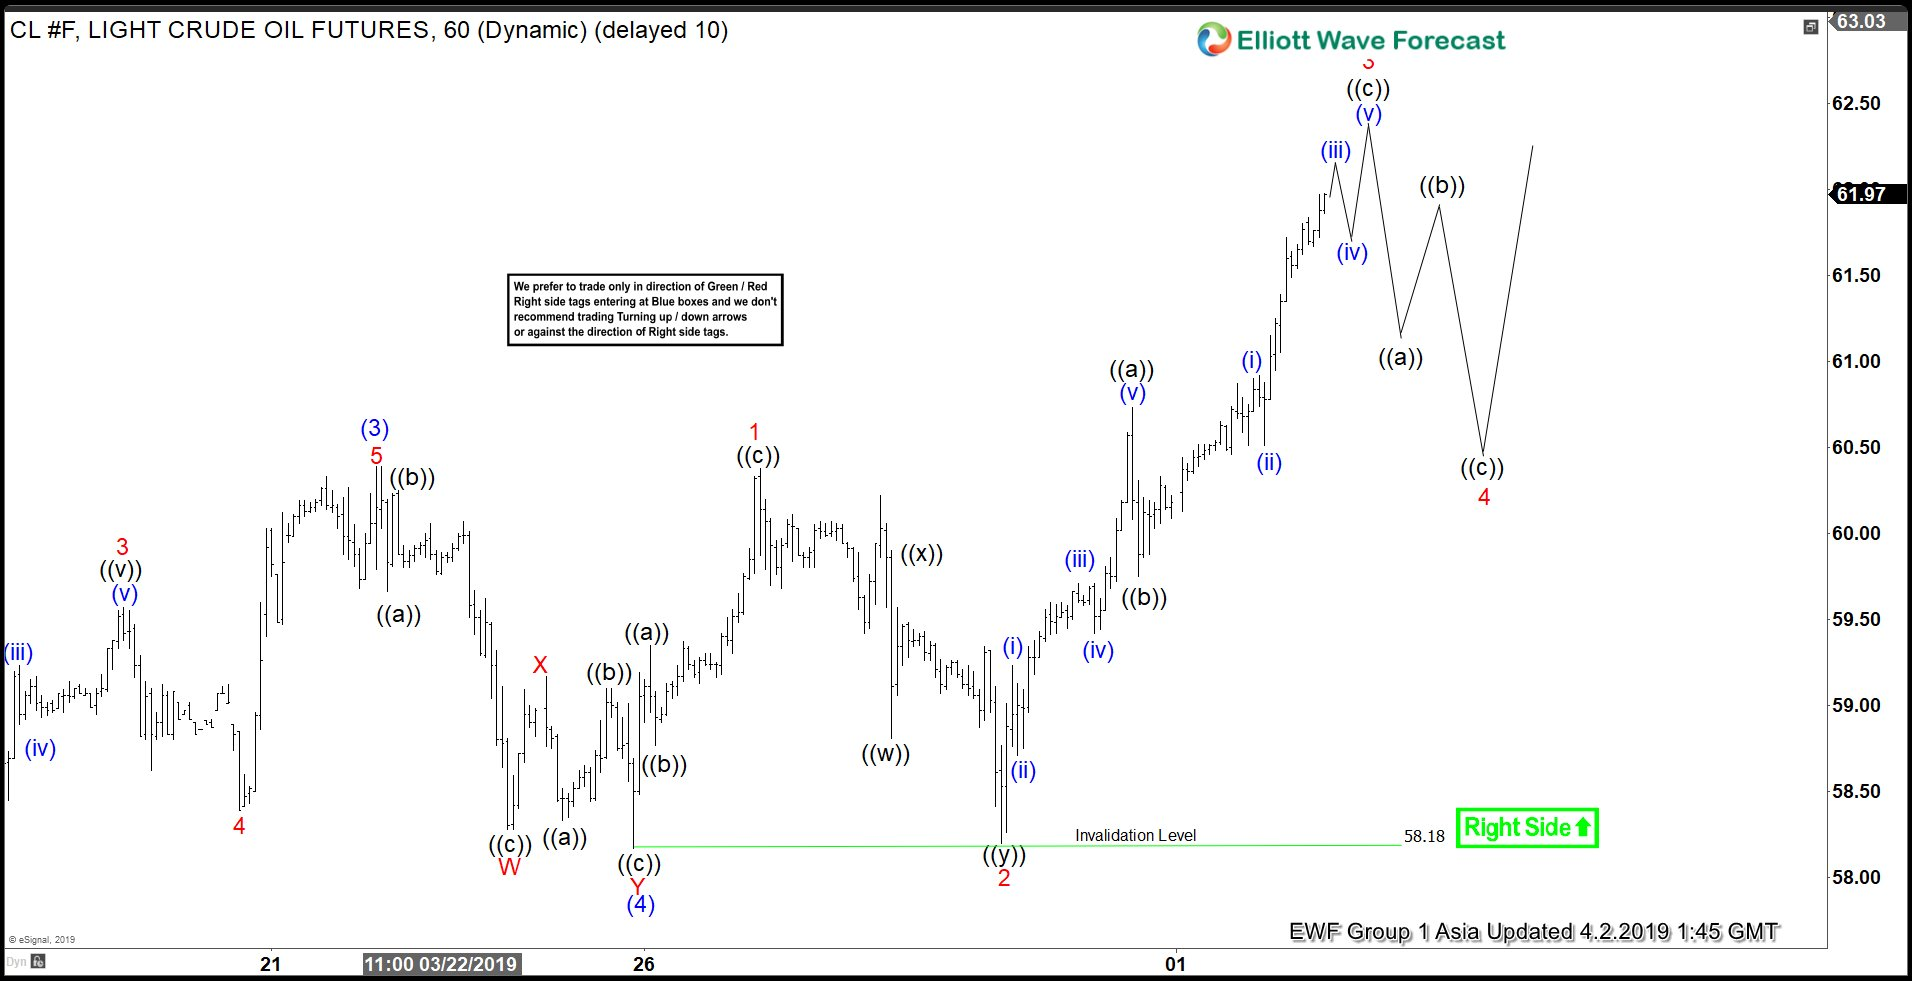 Elliott Wave View: Oil Can see Profit Taking Soon